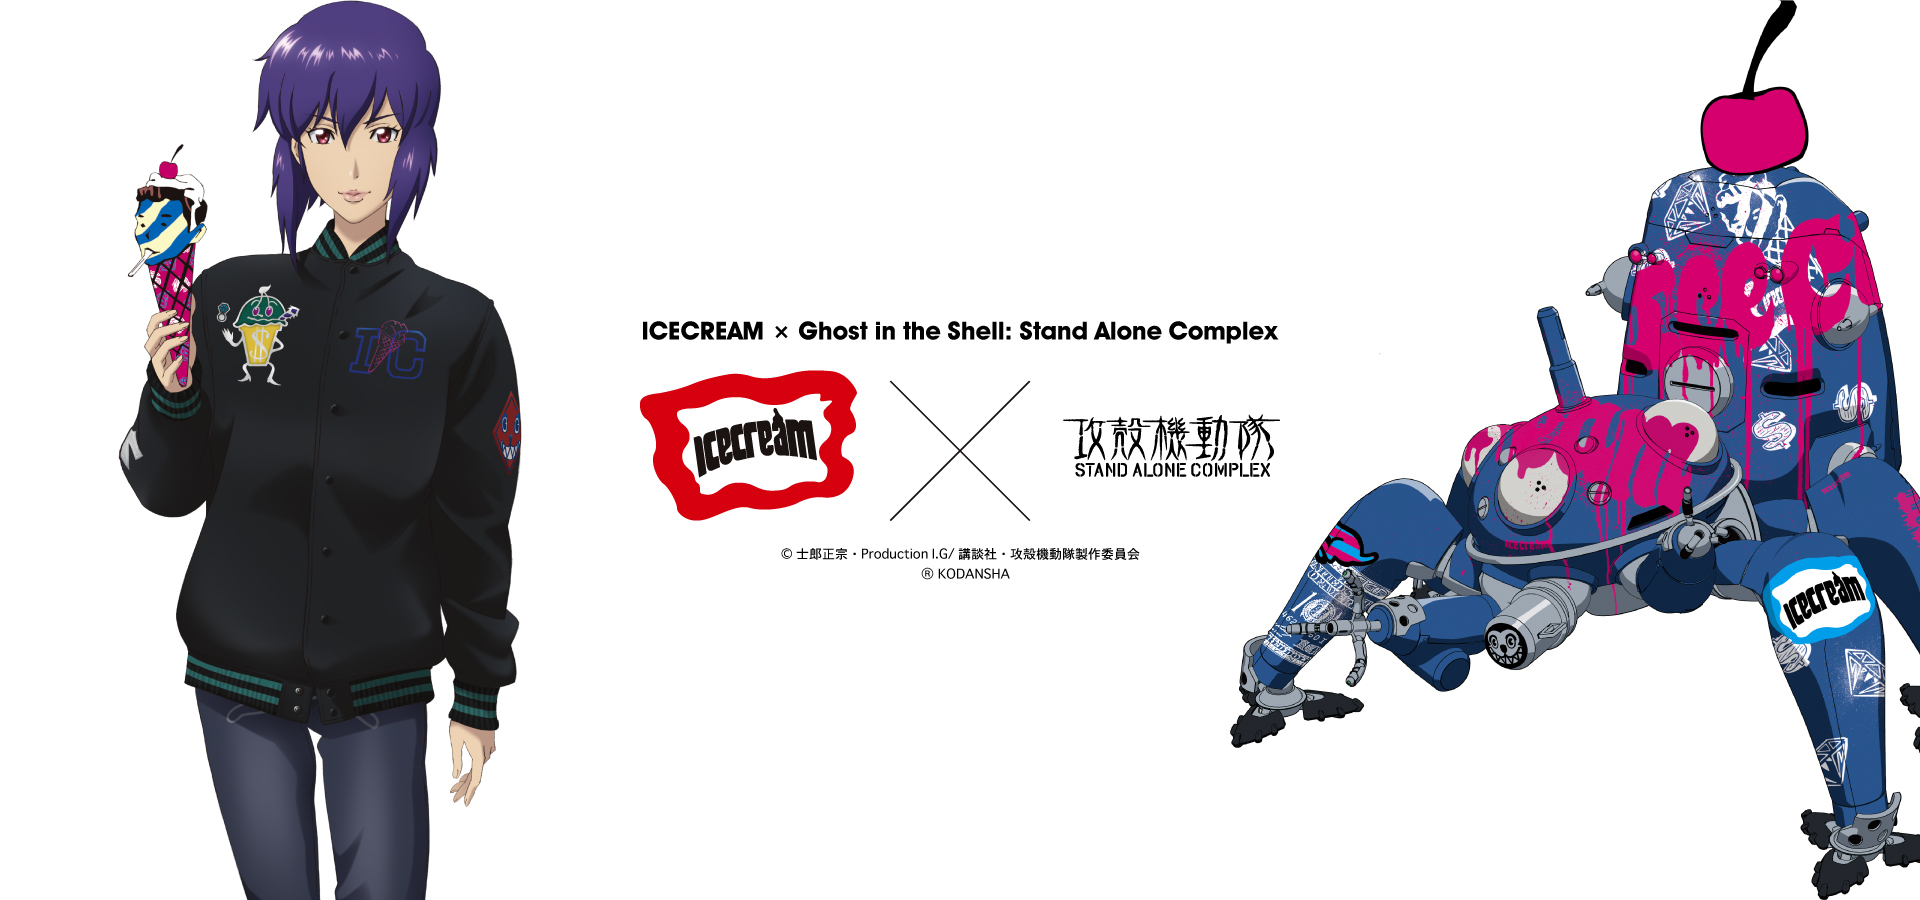 ICECREAM x Ghost in the Shell: Stand Alone Complex